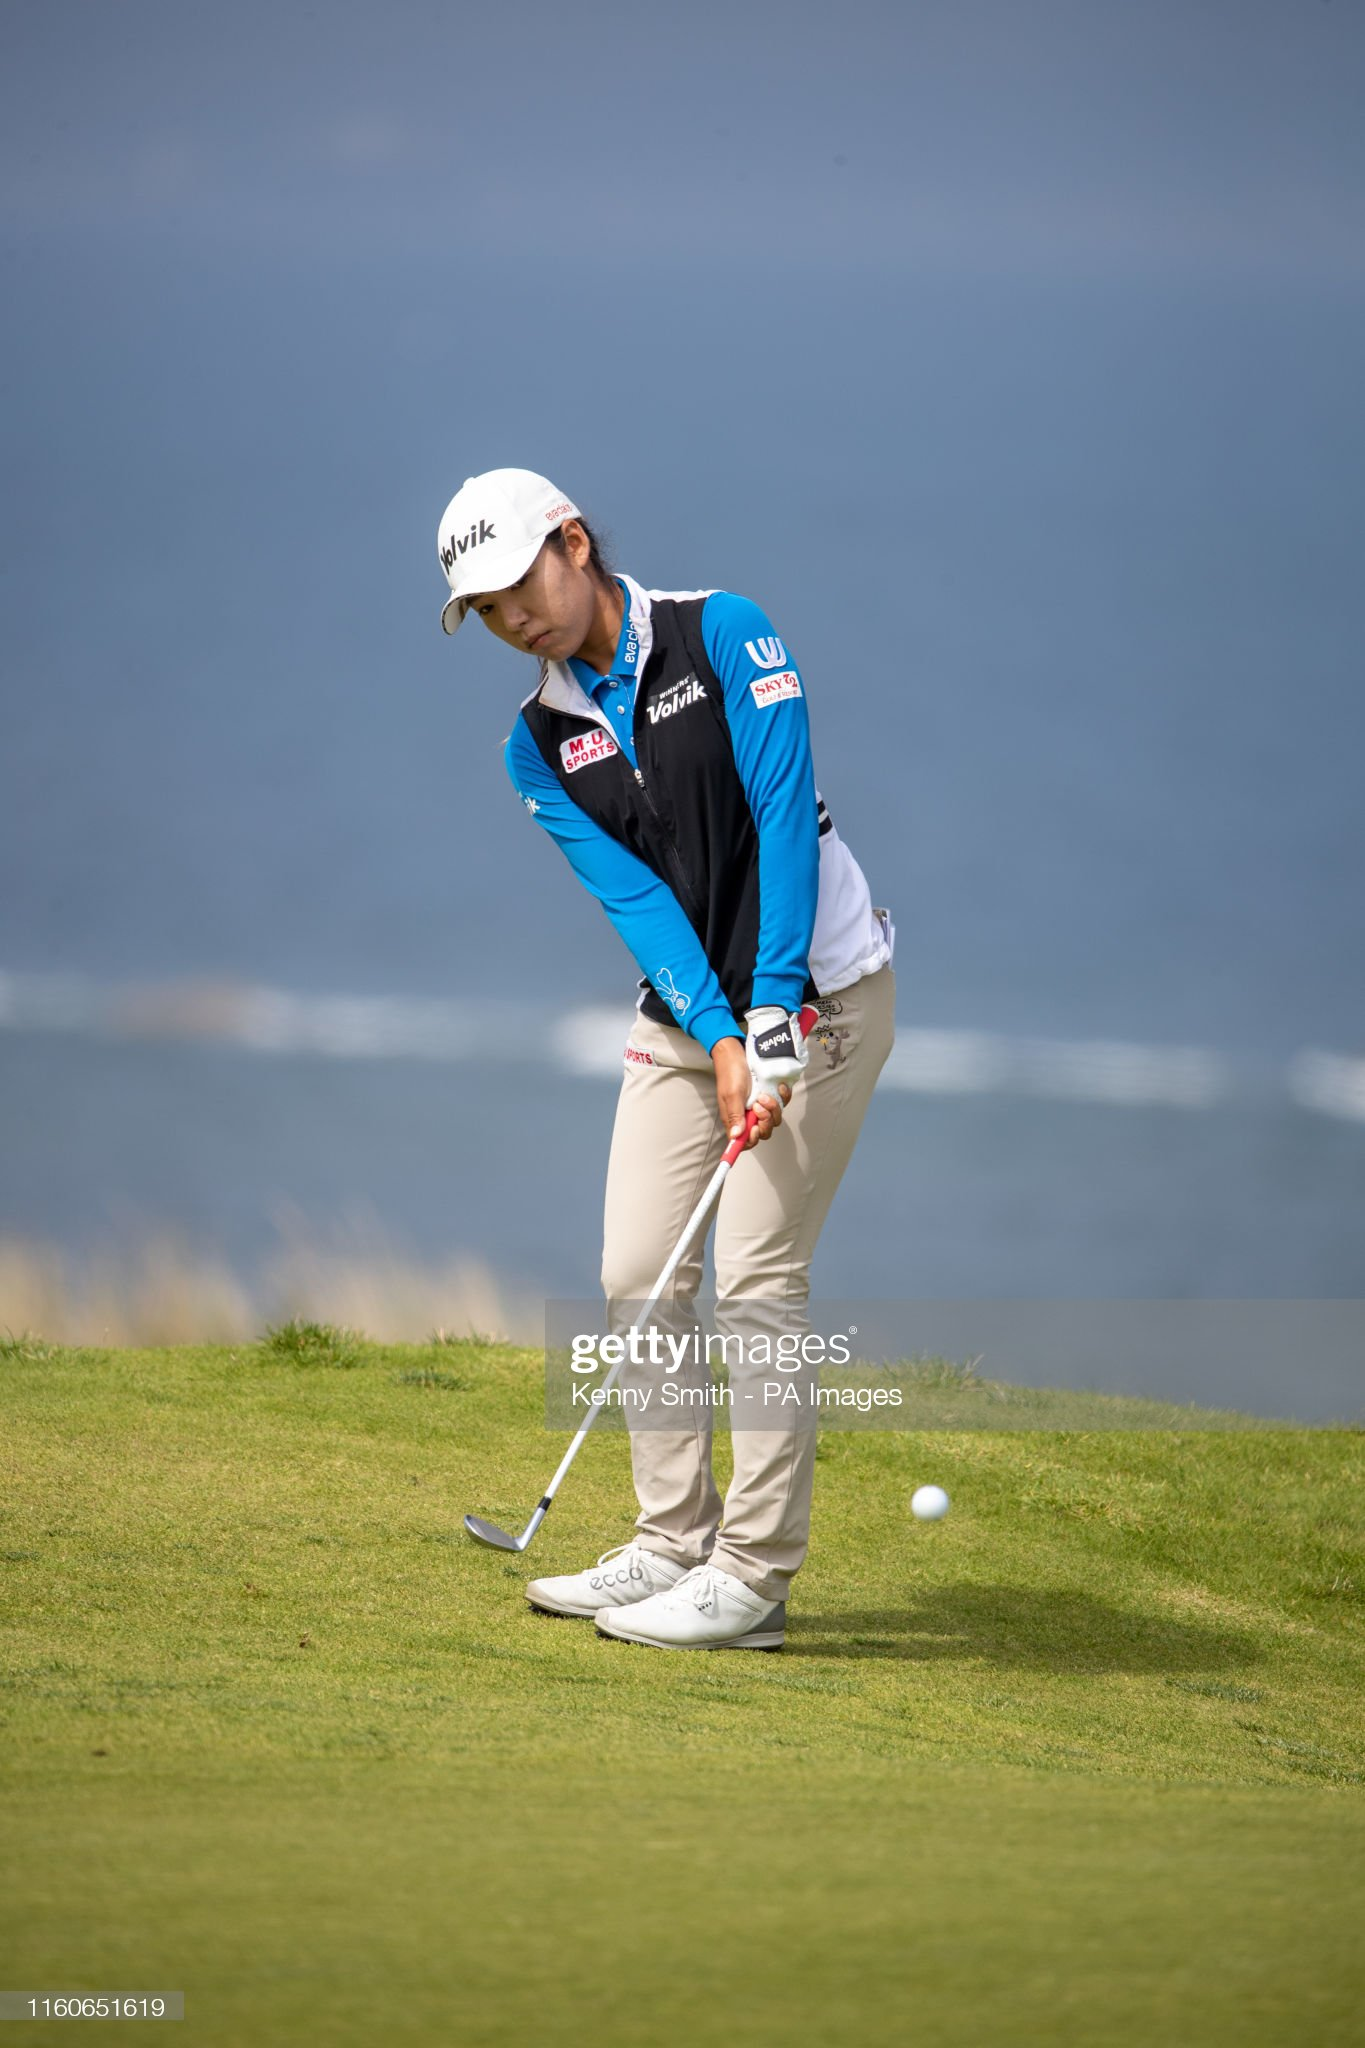 https://media.gettyimages.com/photos/koreas-mi-hyang-lee-plays-a-chip-onto-the-3rd-green-during-day-three-picture-id1160651619?s=2048x2048